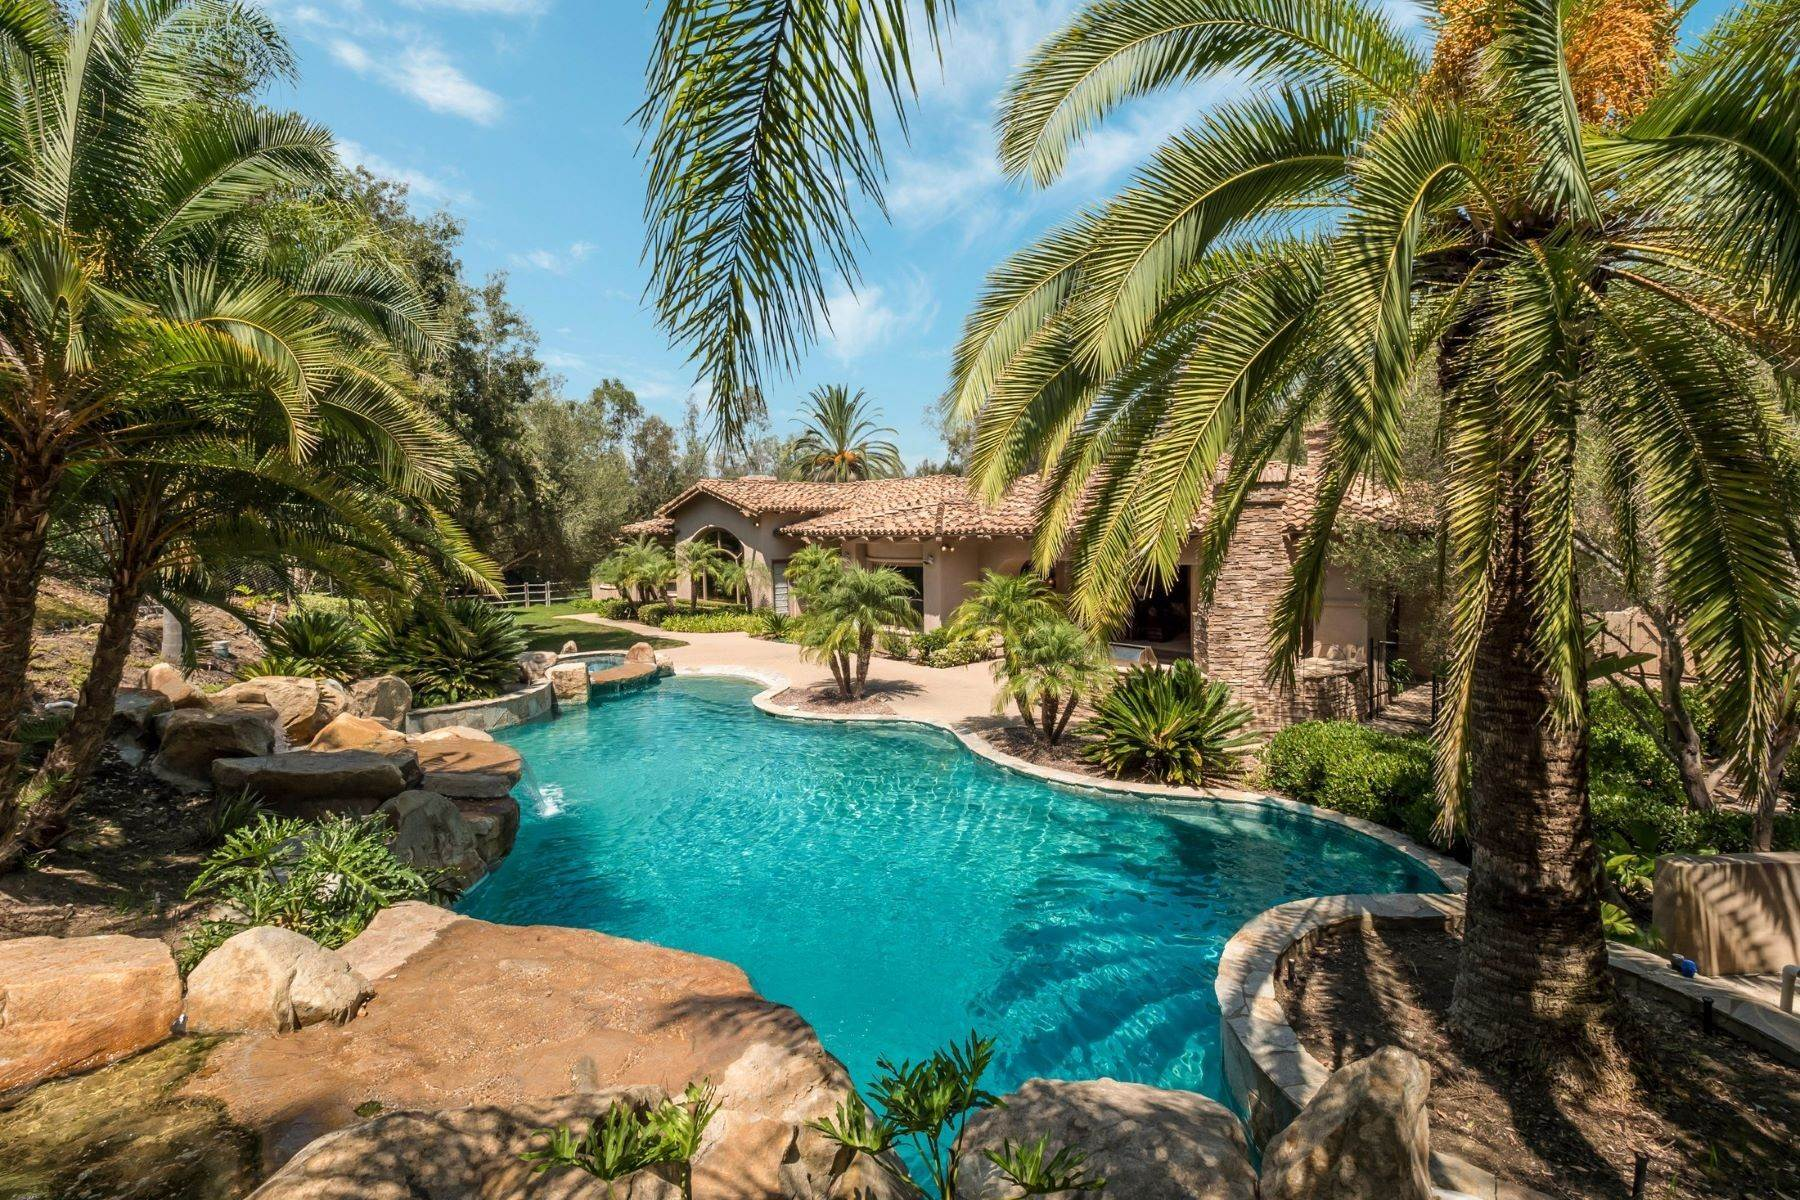 Single Family Homes for Sale at A New Place to Call Home 16028 Rambla De Las Flores Rancho Santa Fe, California 92067 United States